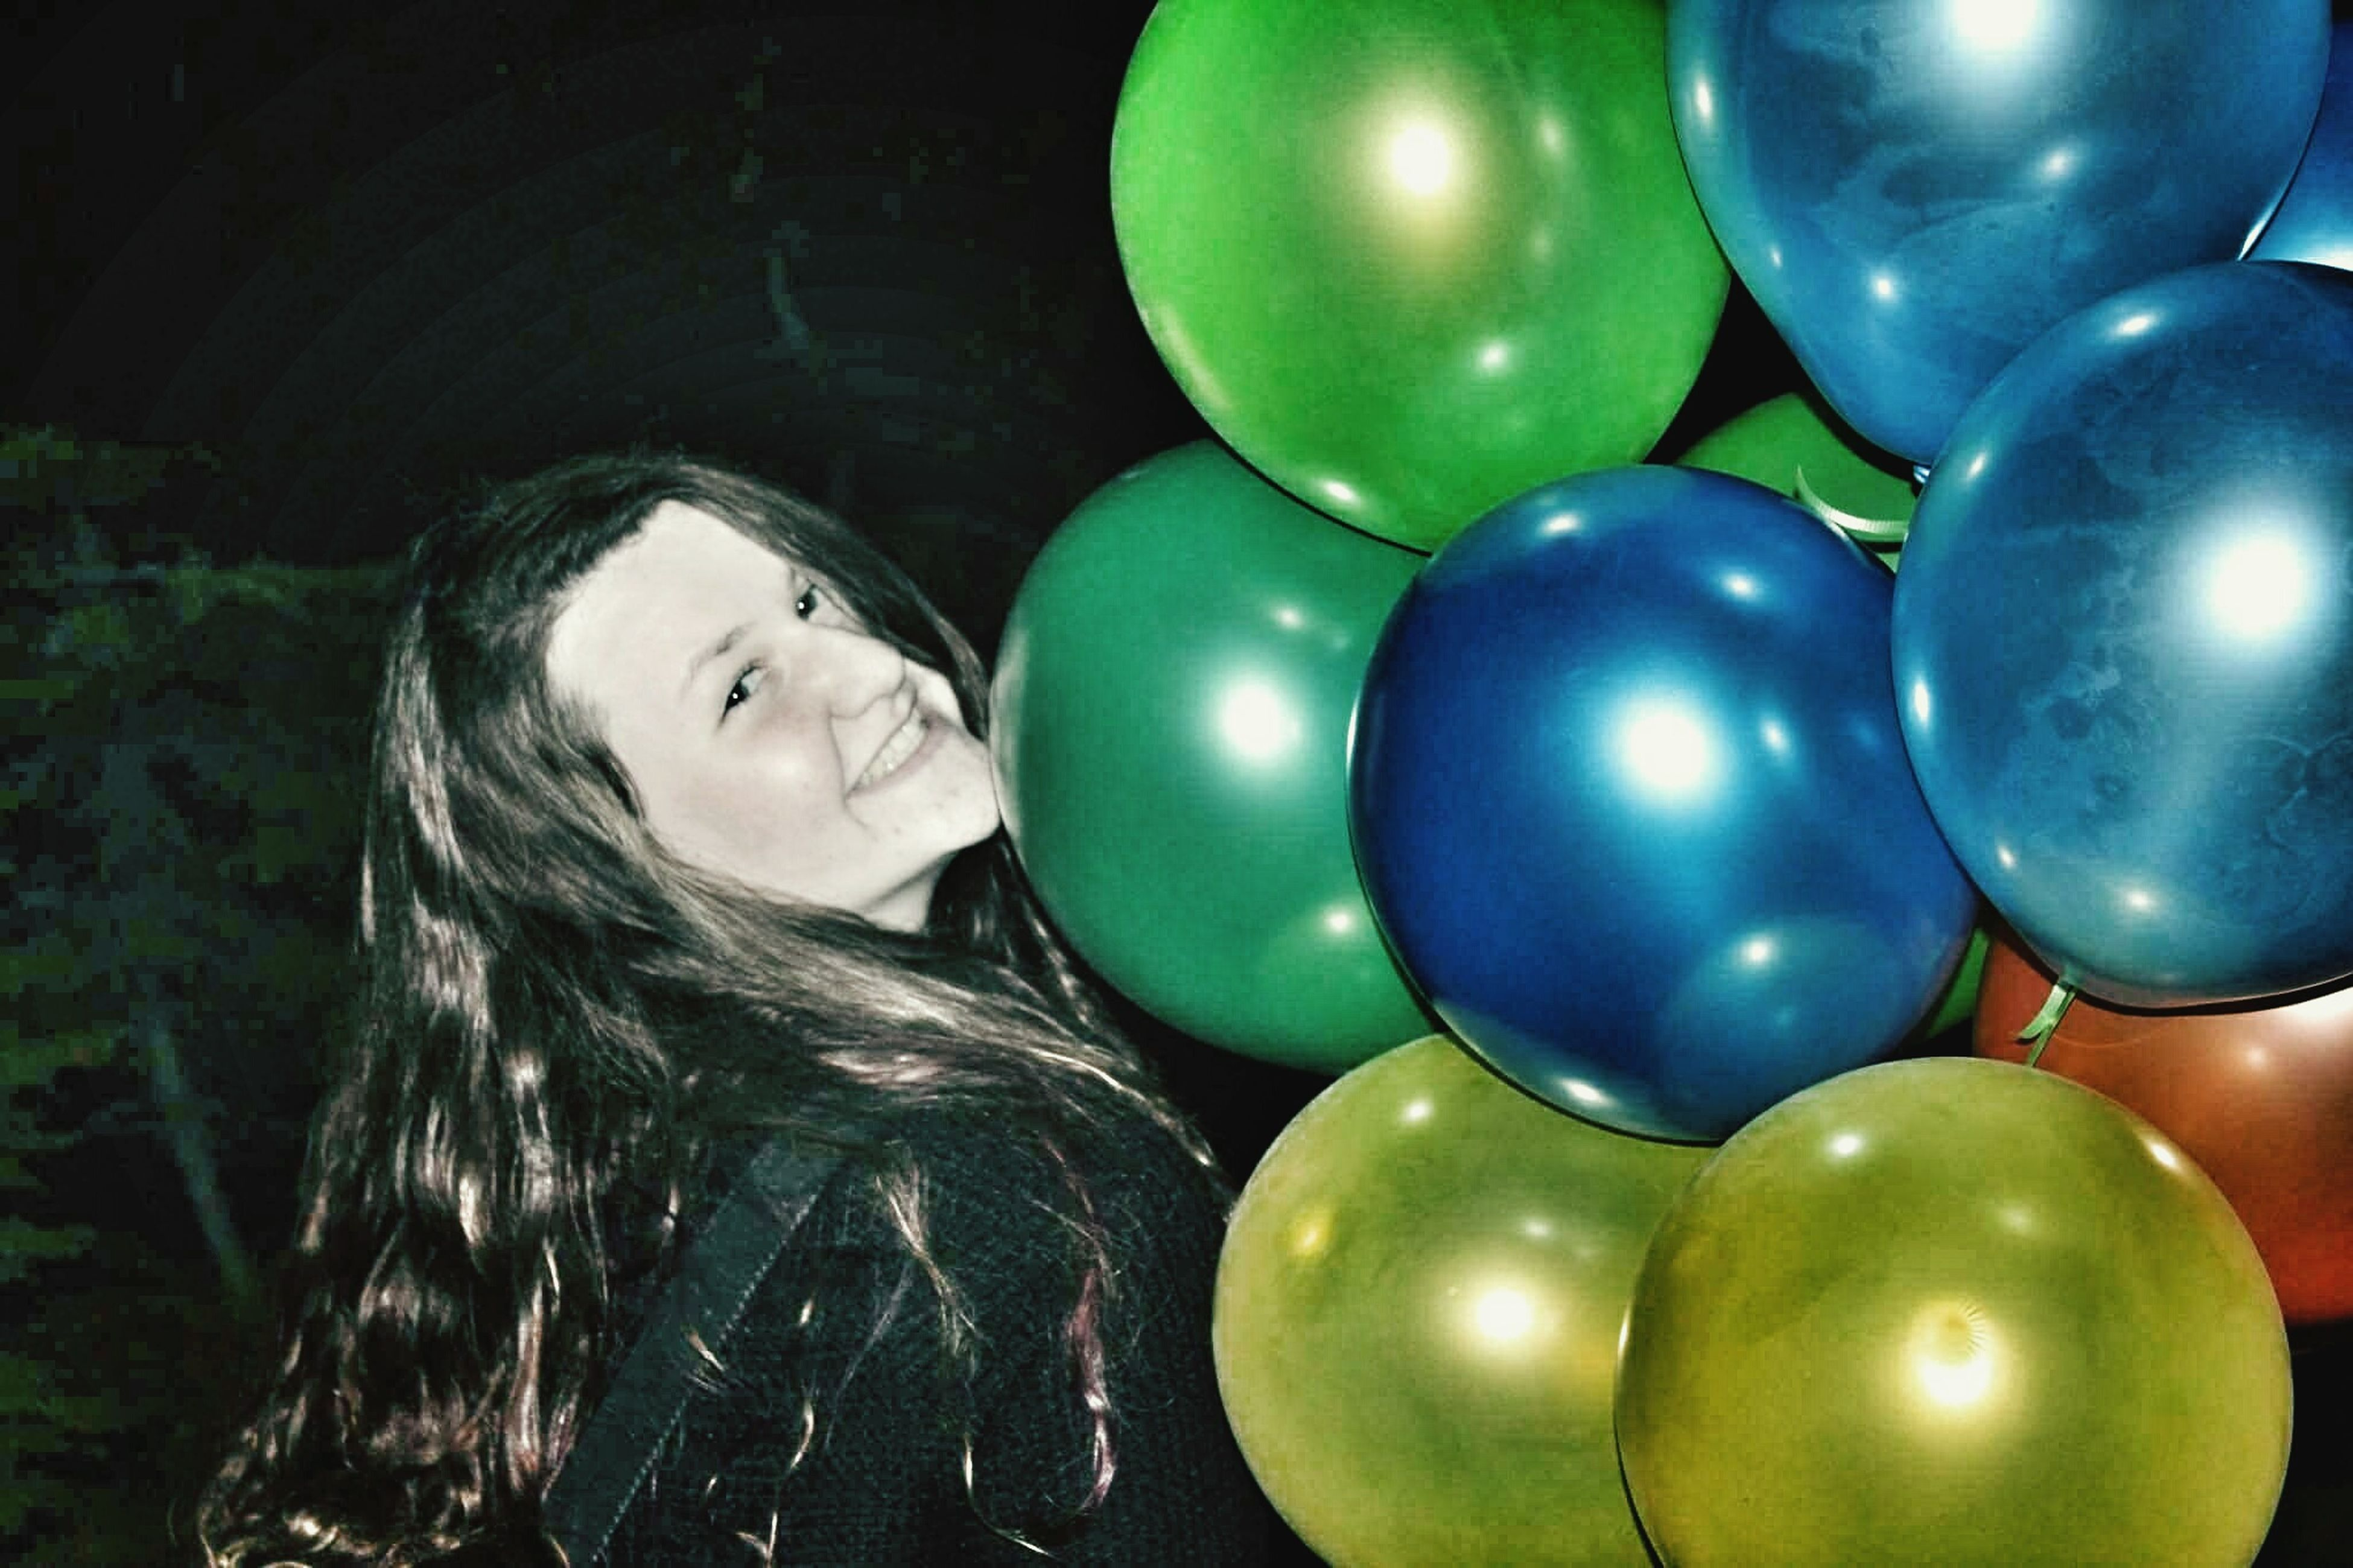 balloon, celebration, green color, multi colored, close-up, helium balloon, happiness, holiday - event, childhood, indoors, fragility, helium, smiling, no people, day